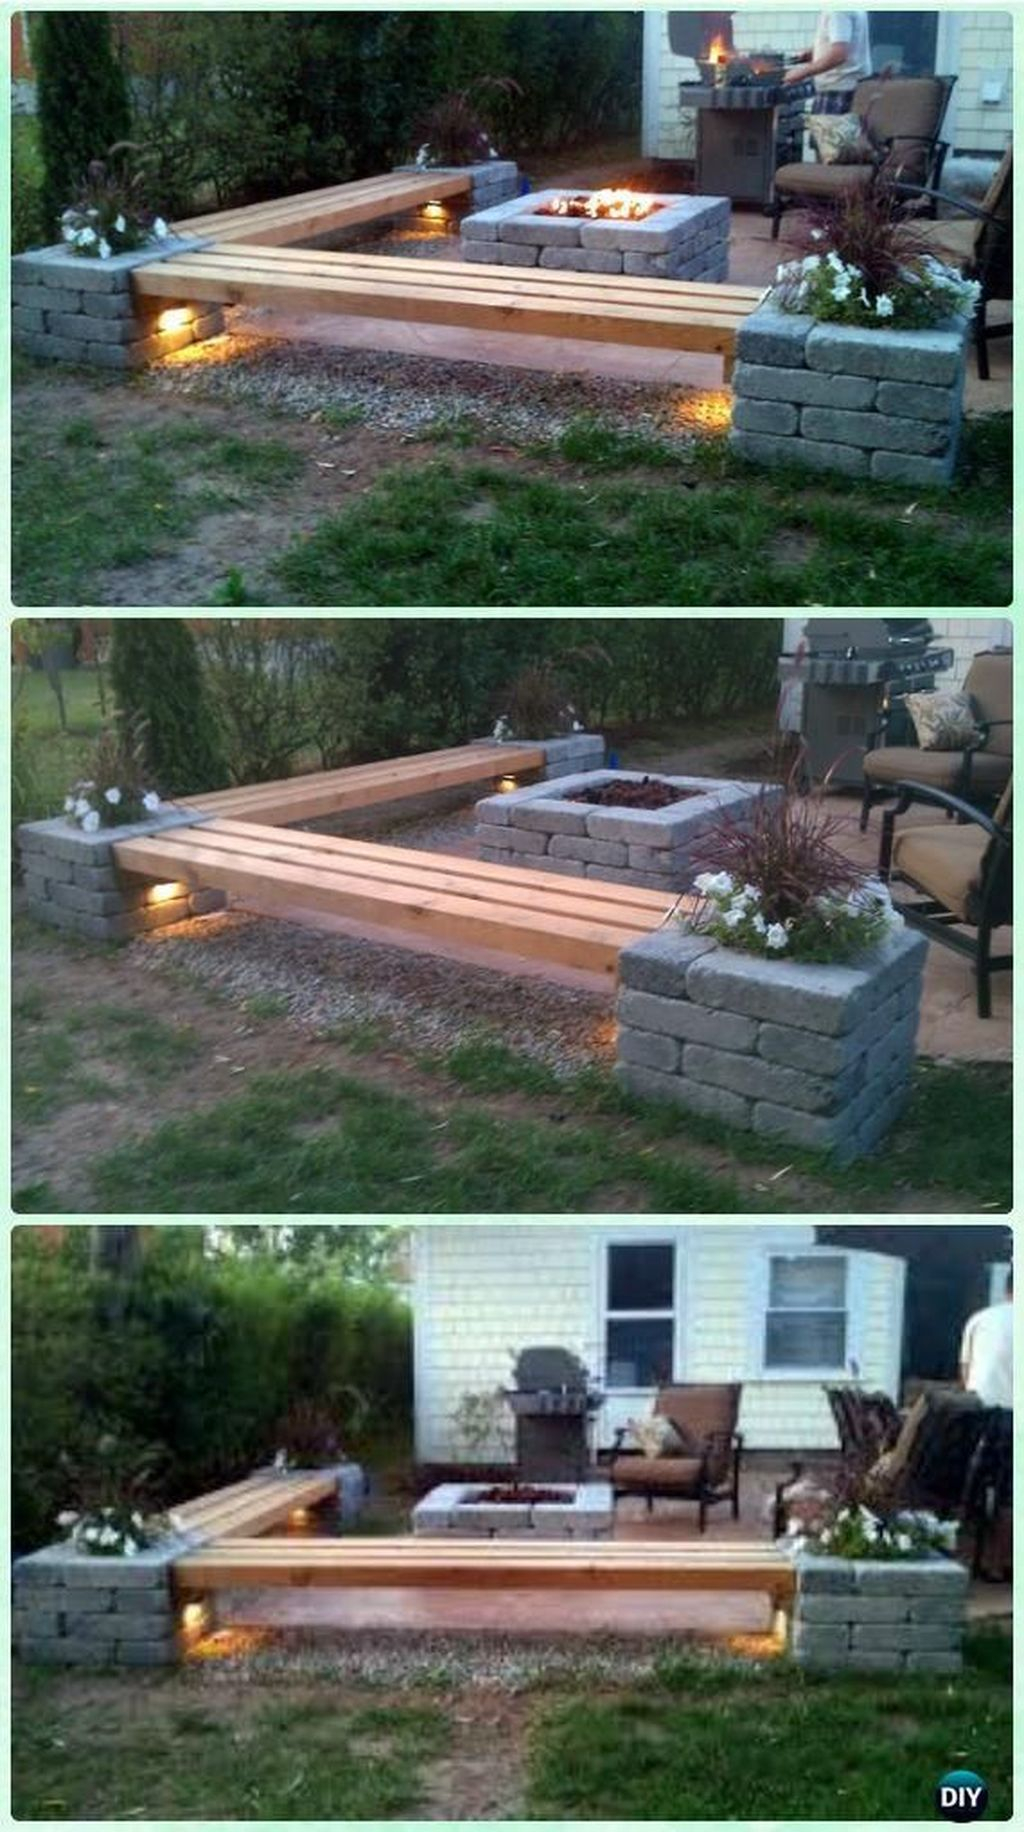 11 Magnificent Modern Fire Pit Fence Ideas In 2019 Diy intended for dimensions 1024 X 1832